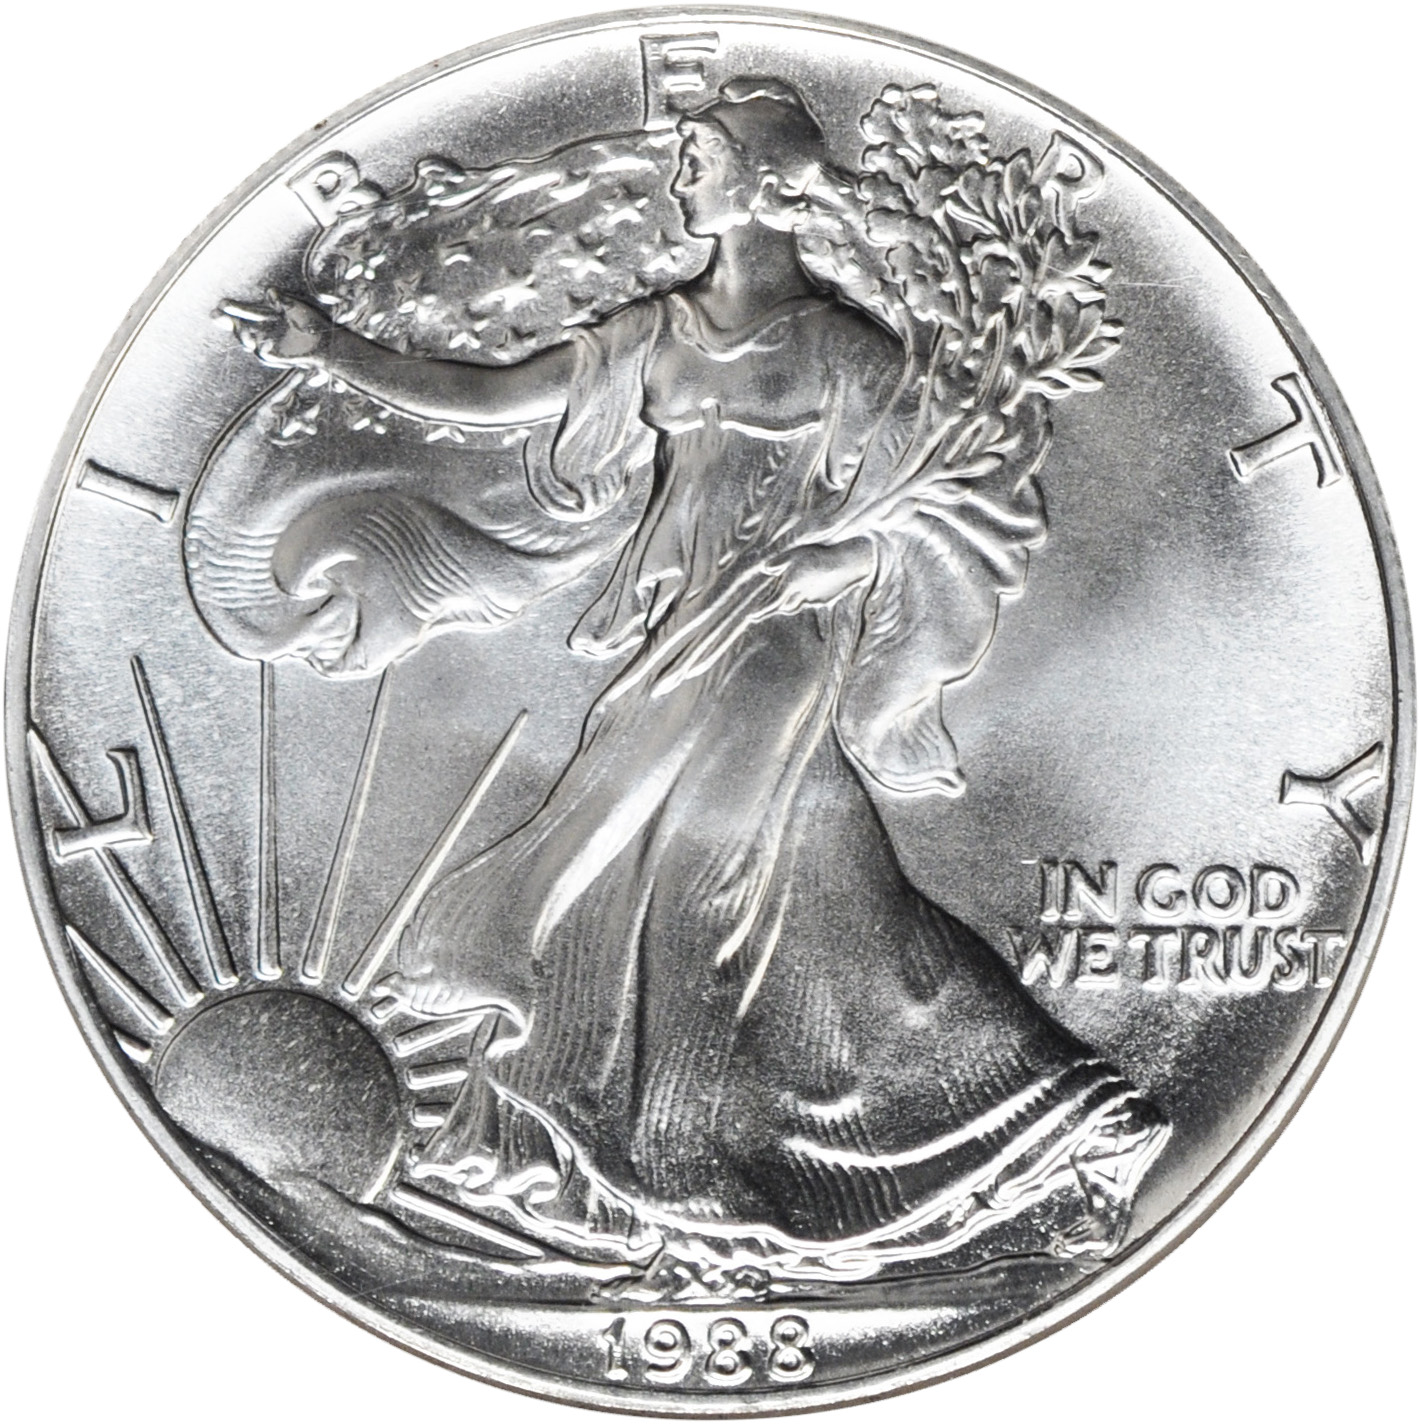 Price Guide and Information About 2000 $1 Silver Coins